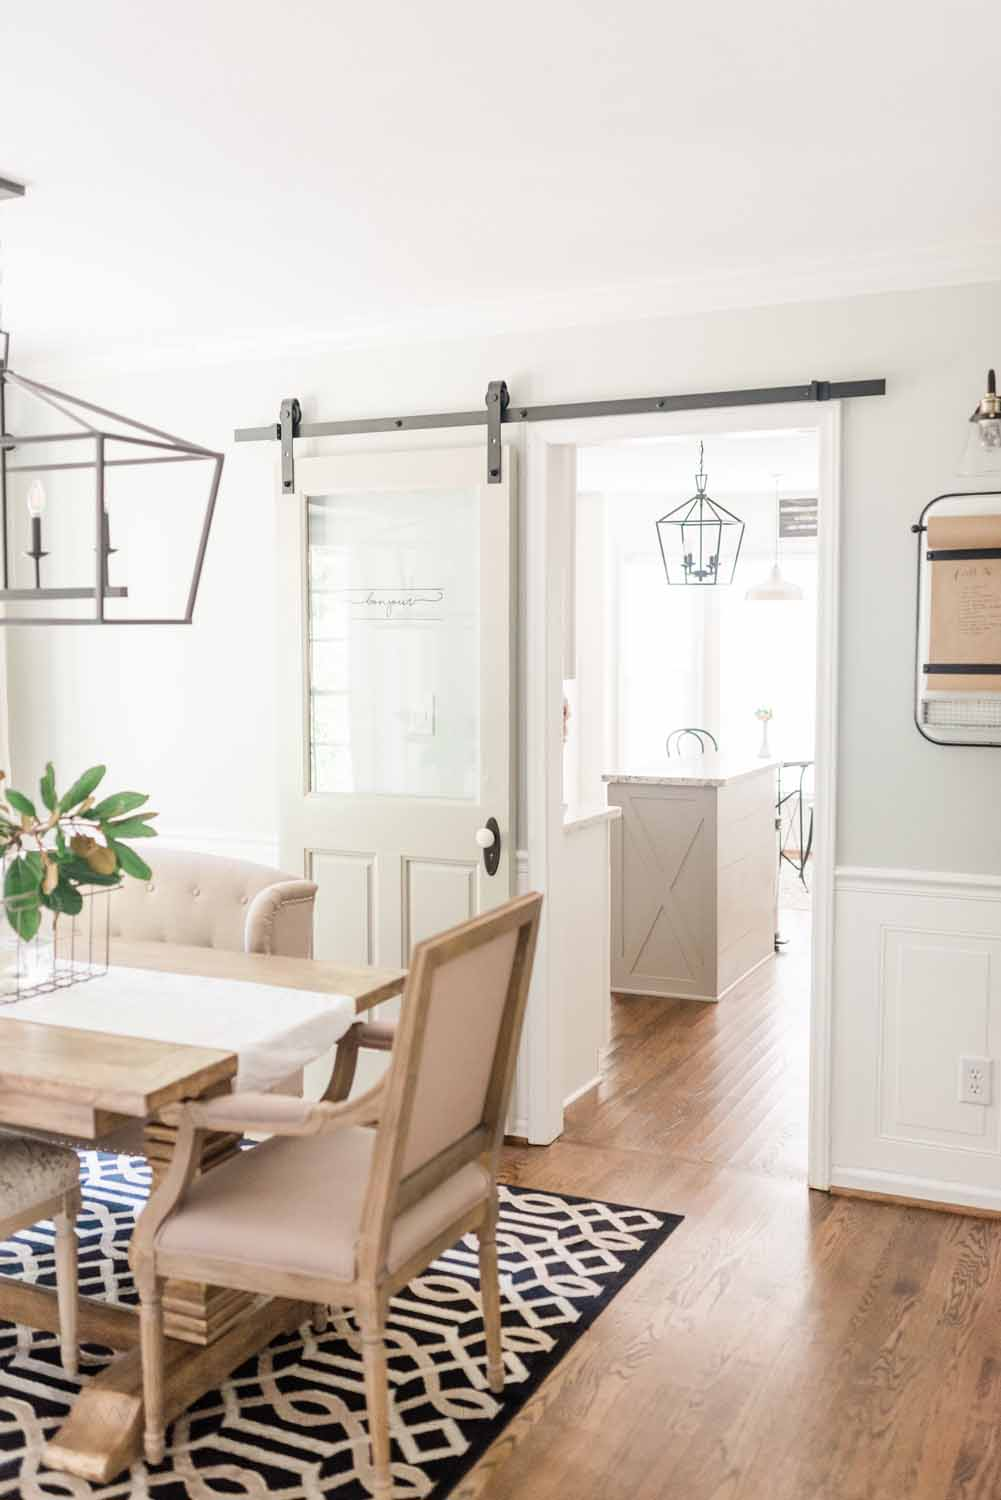 Elizabeth Burns Design Raleigh Interior Designer 1990s house remodel before and after Sherwin Williams Silver Strand SW 7057 Farmhouse Dining Room Barn Door Budget Renovation (5).jpg